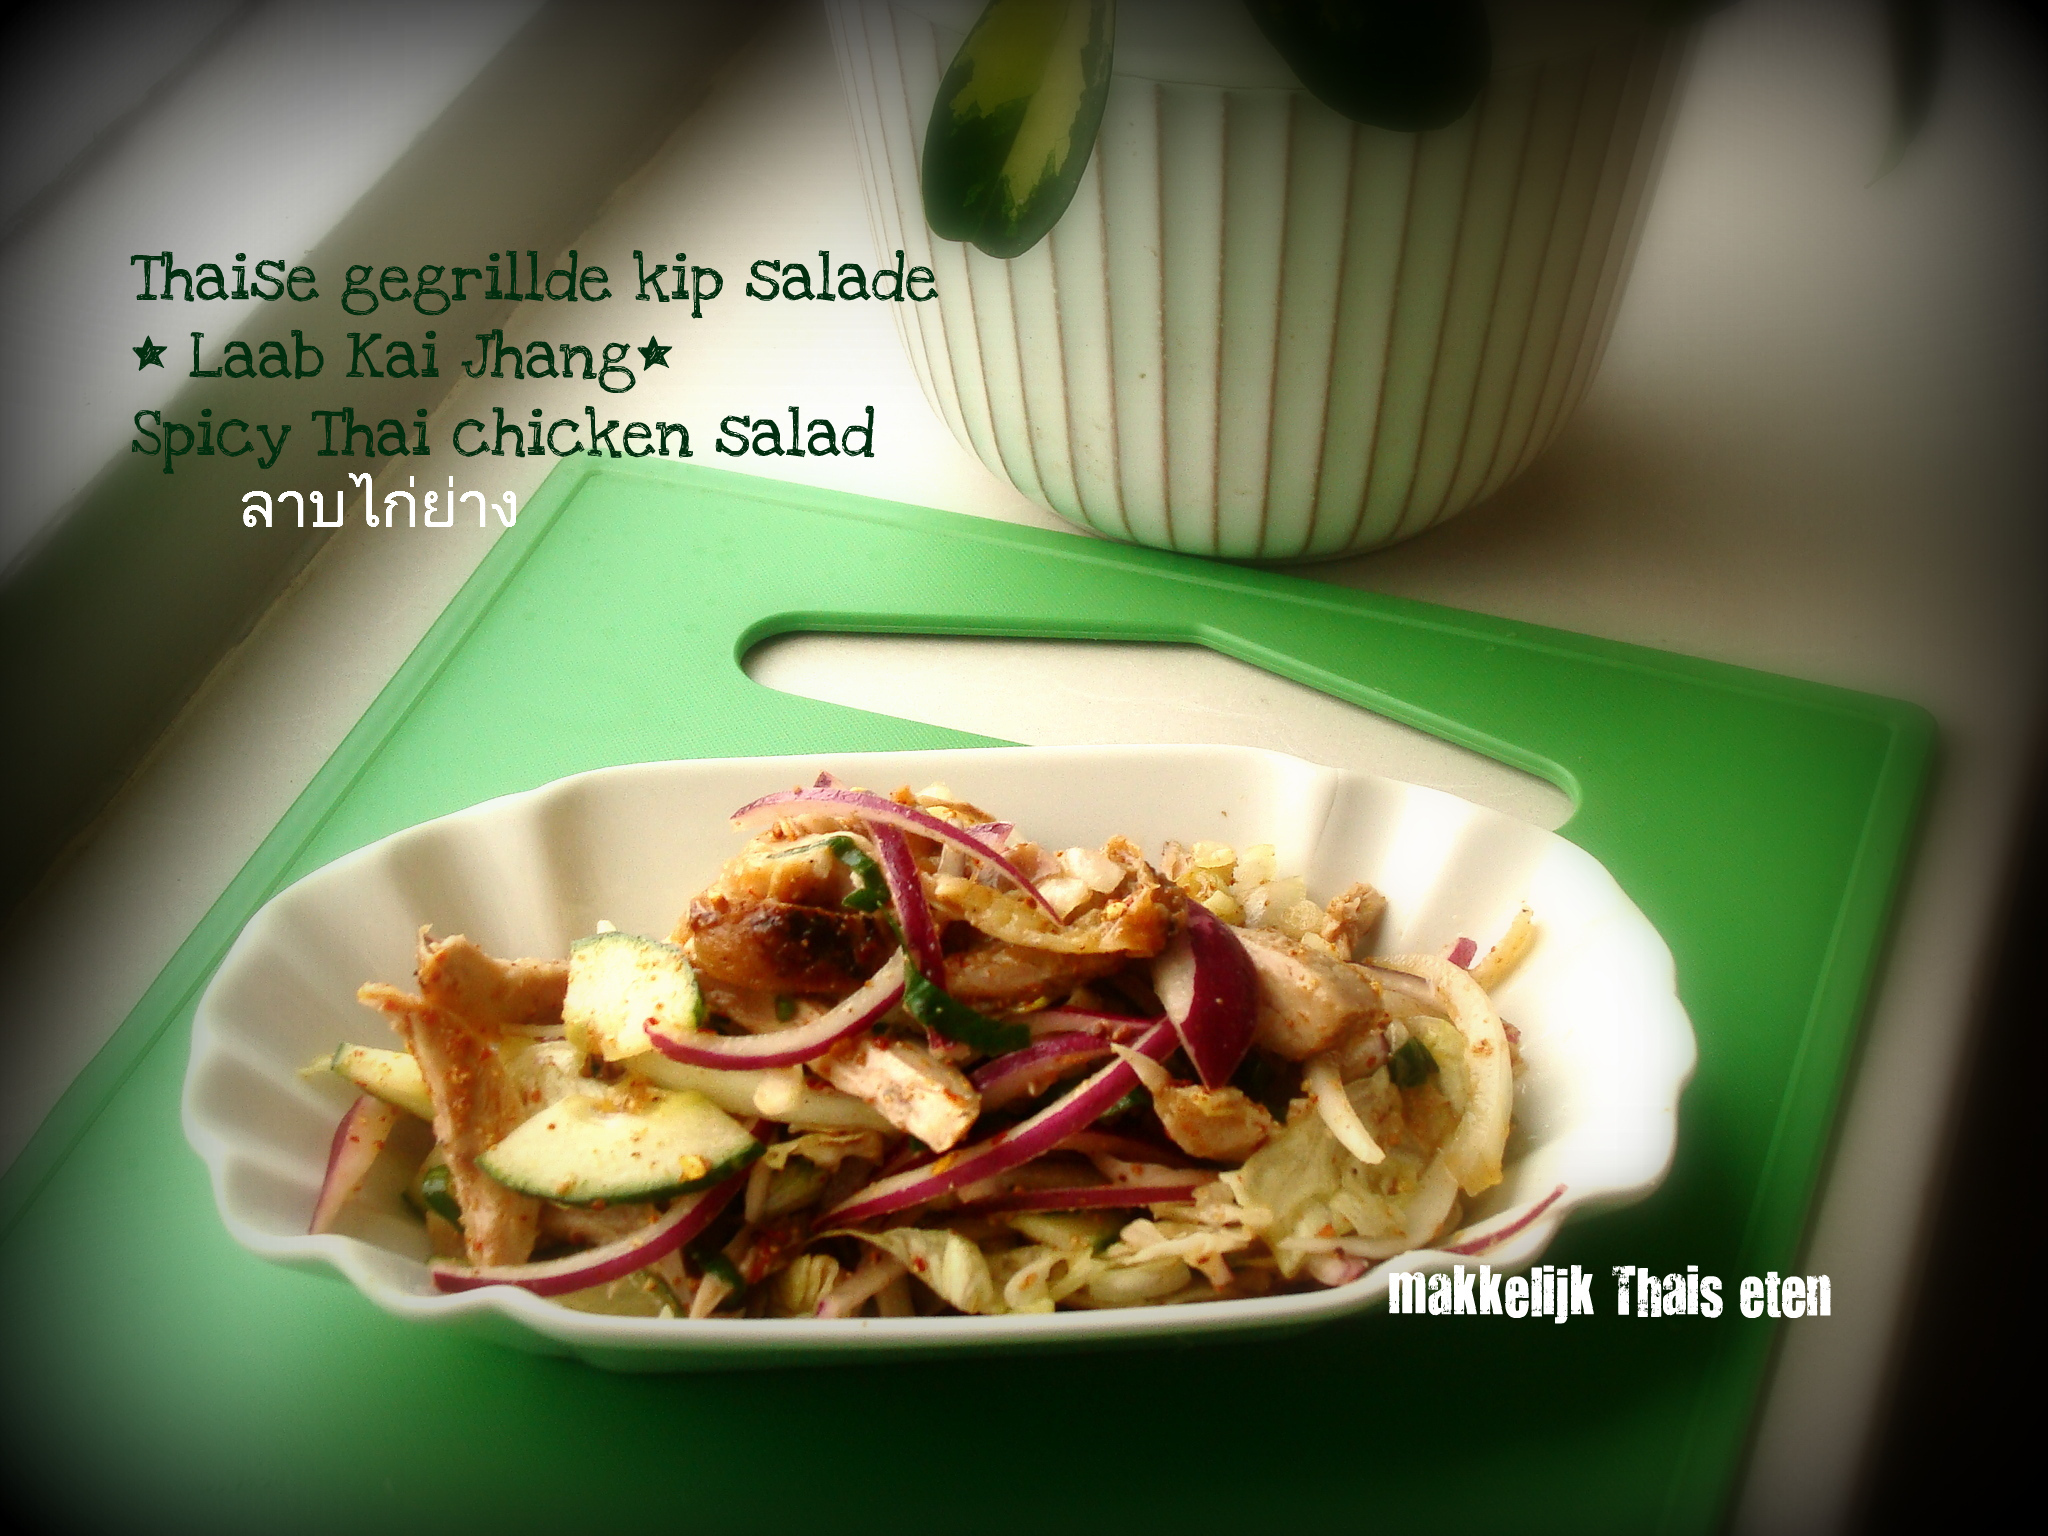 Thaise gegrilde kip salade * Thai spicy chicken salad